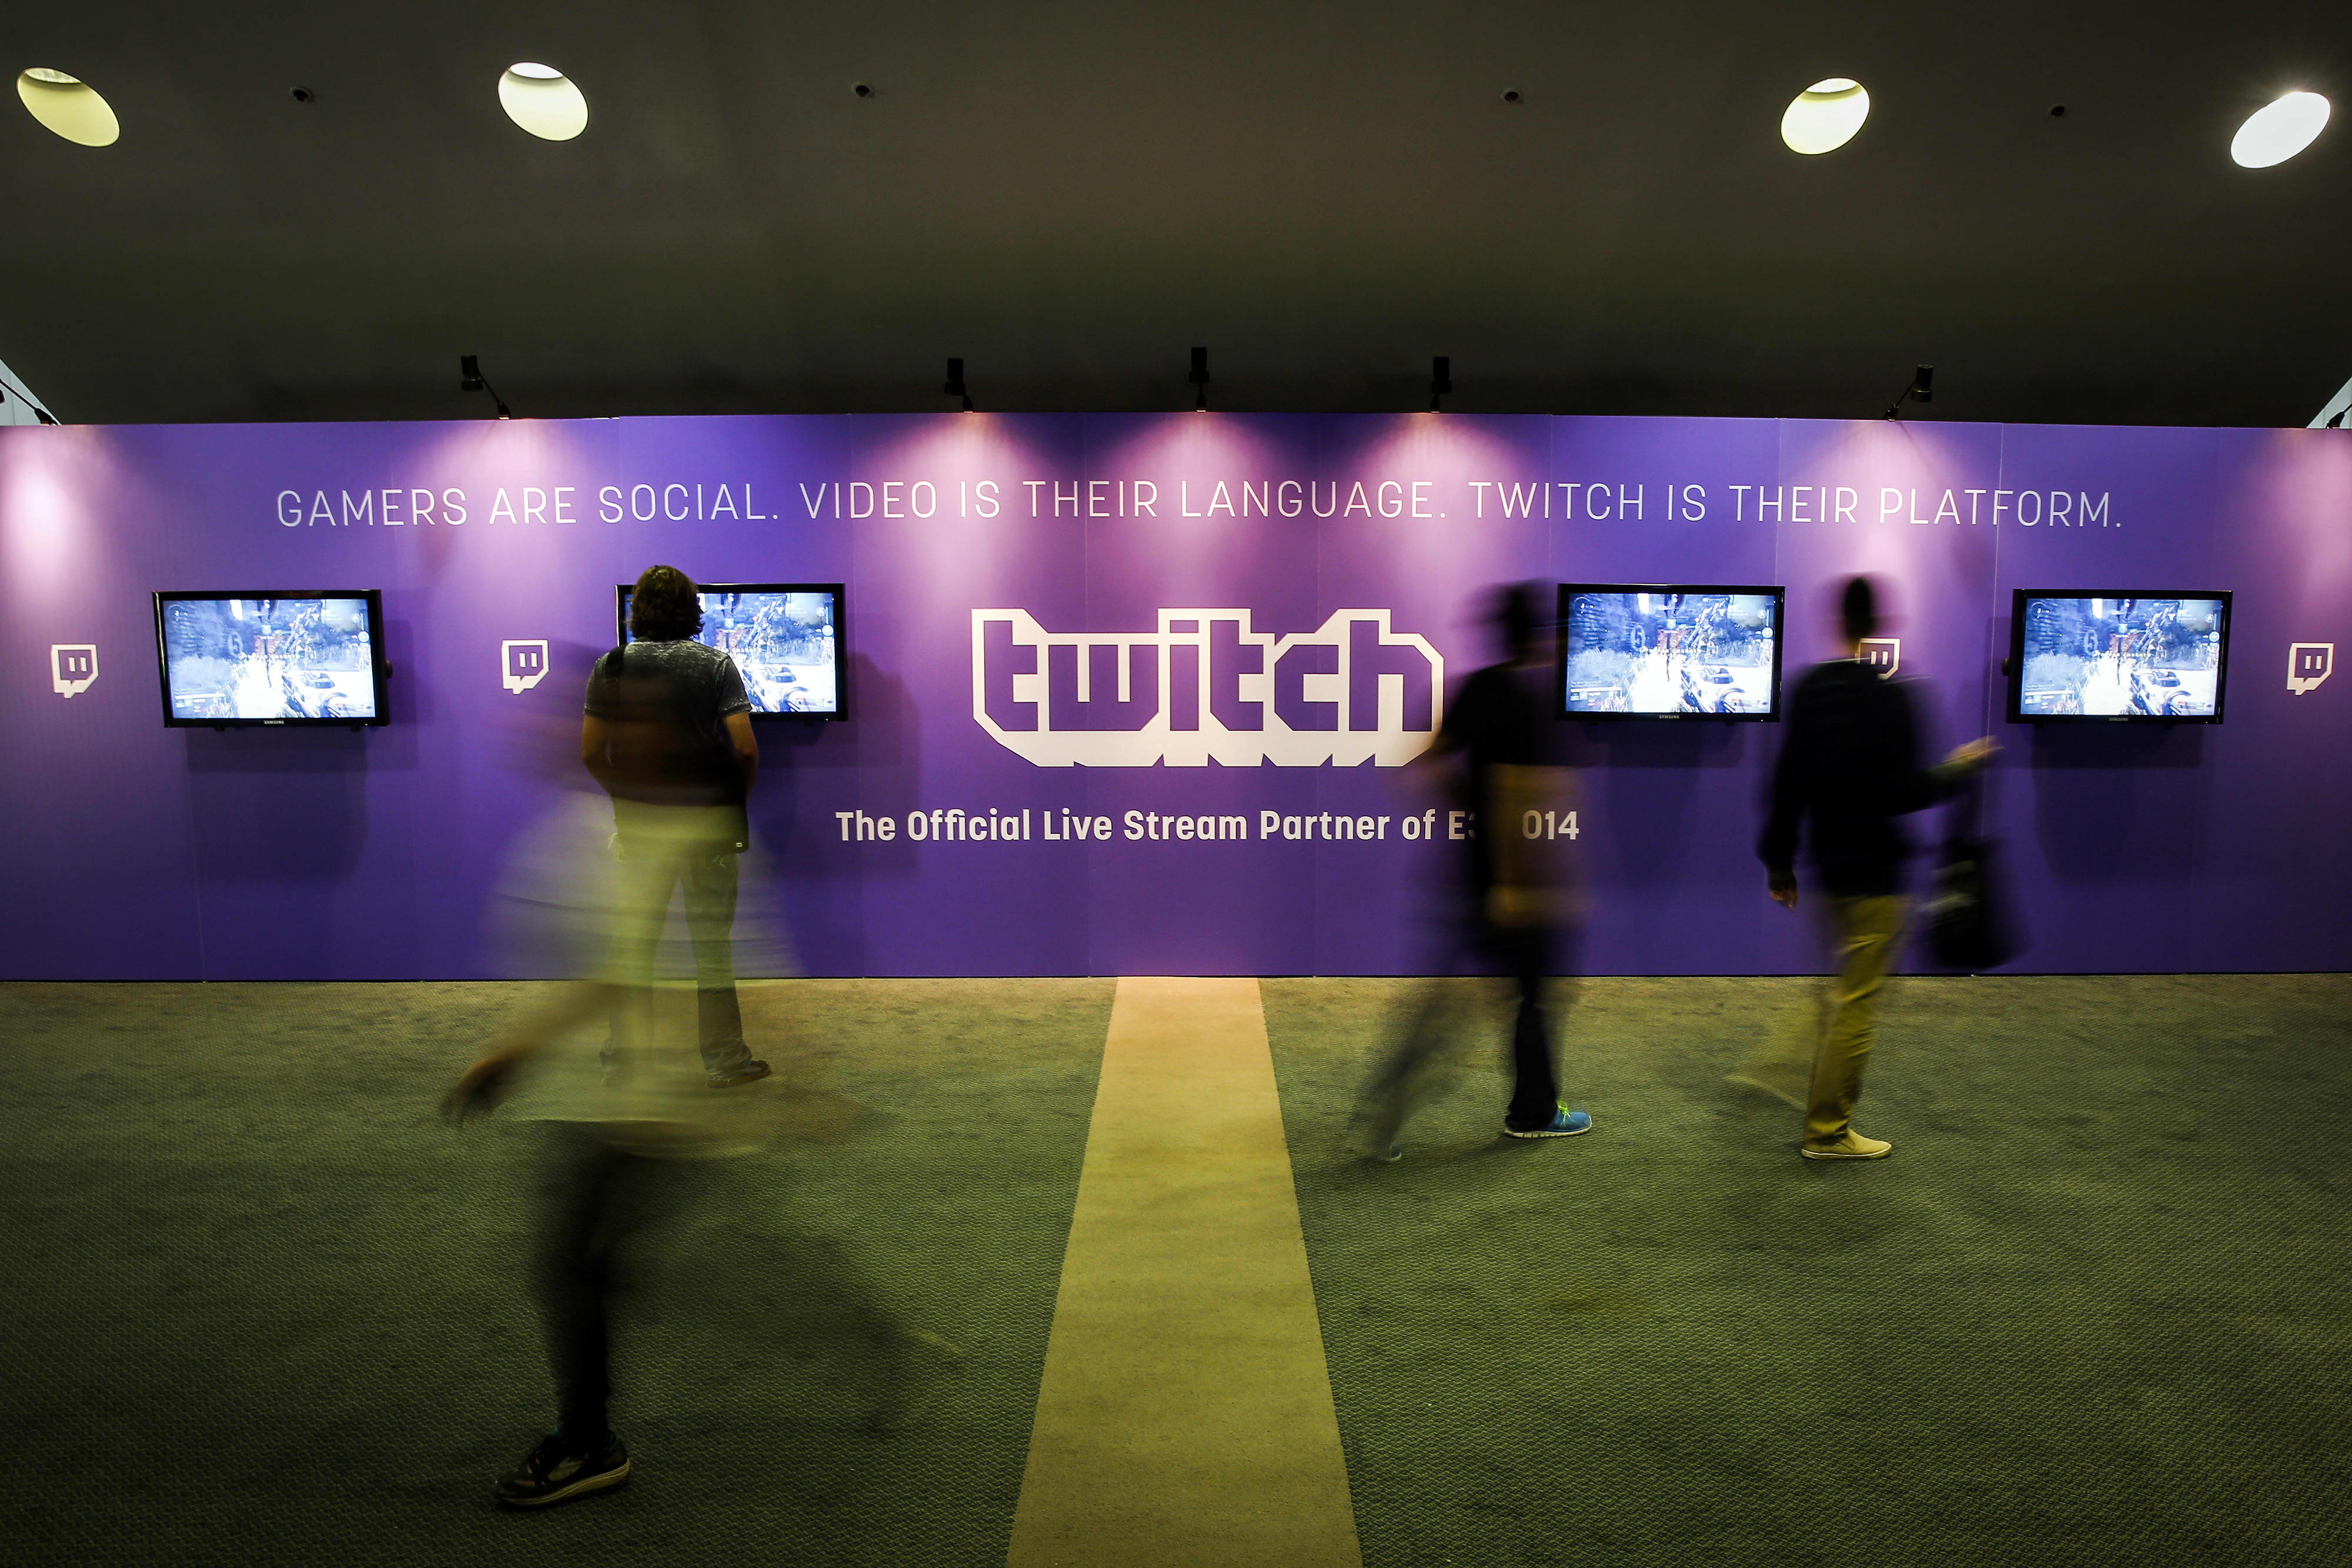 Twitch, the Amazon-owned video streaming platform used by gamers, said it will take action against users who display certain harmful behaviors entirely offline.